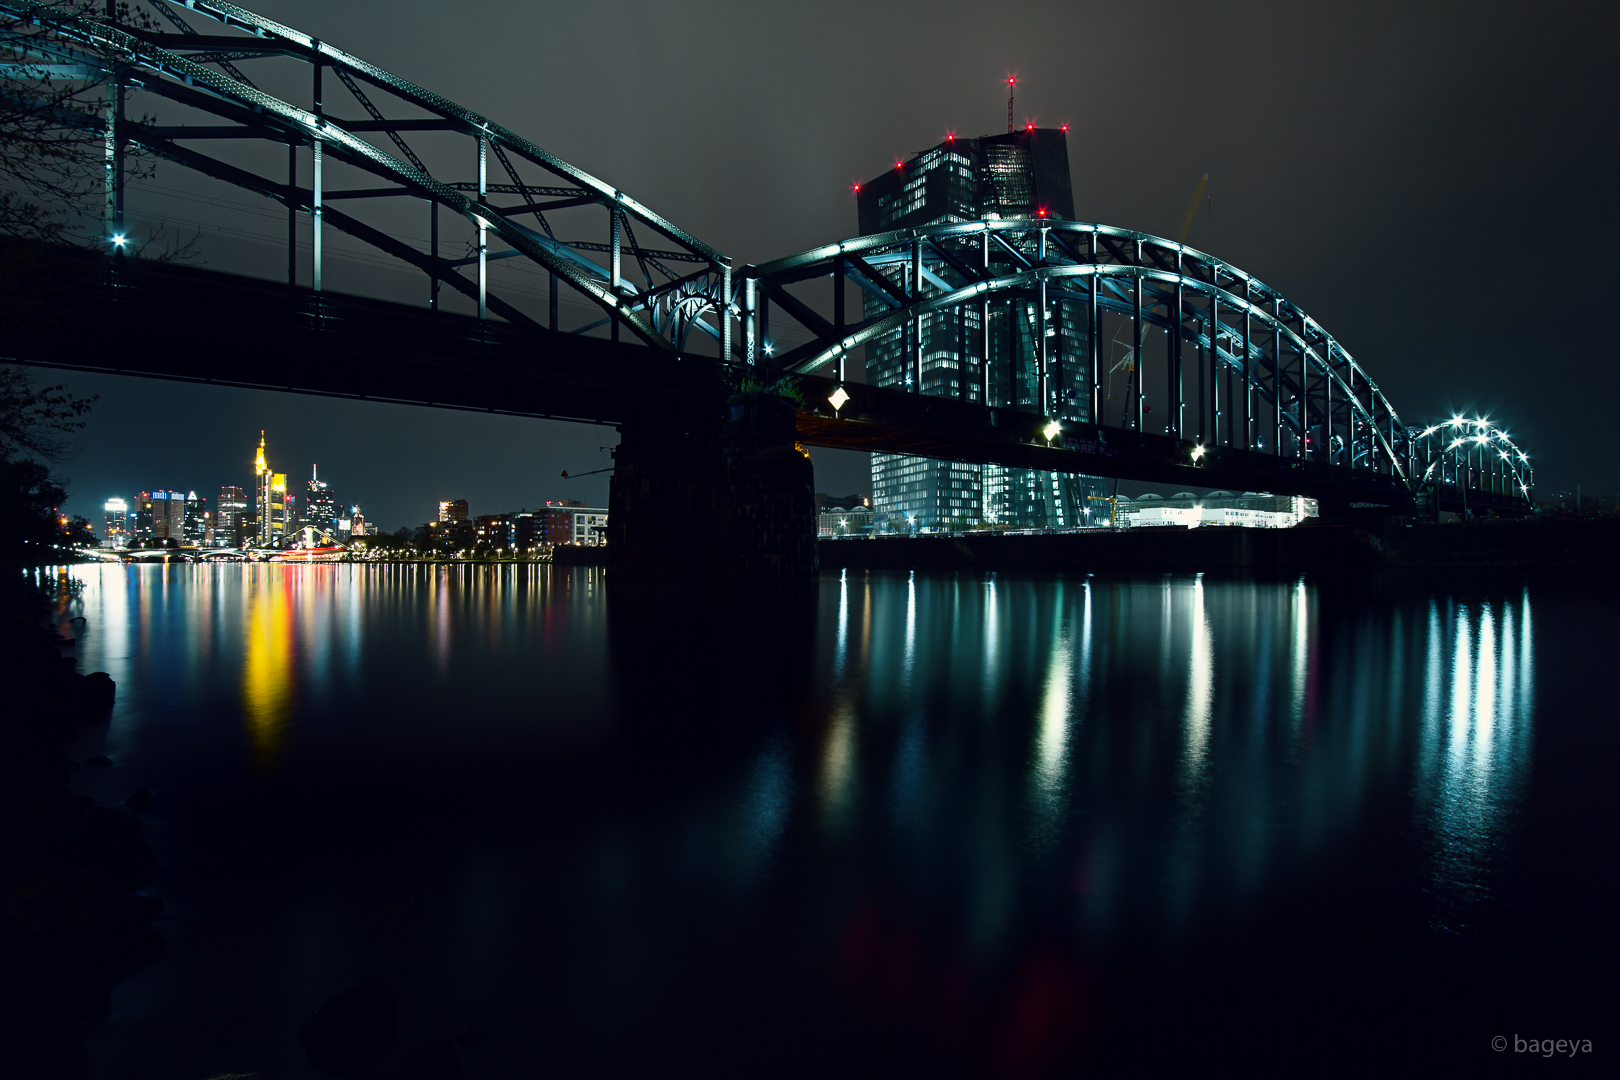 FFM - the old bridge and the new piggy bank